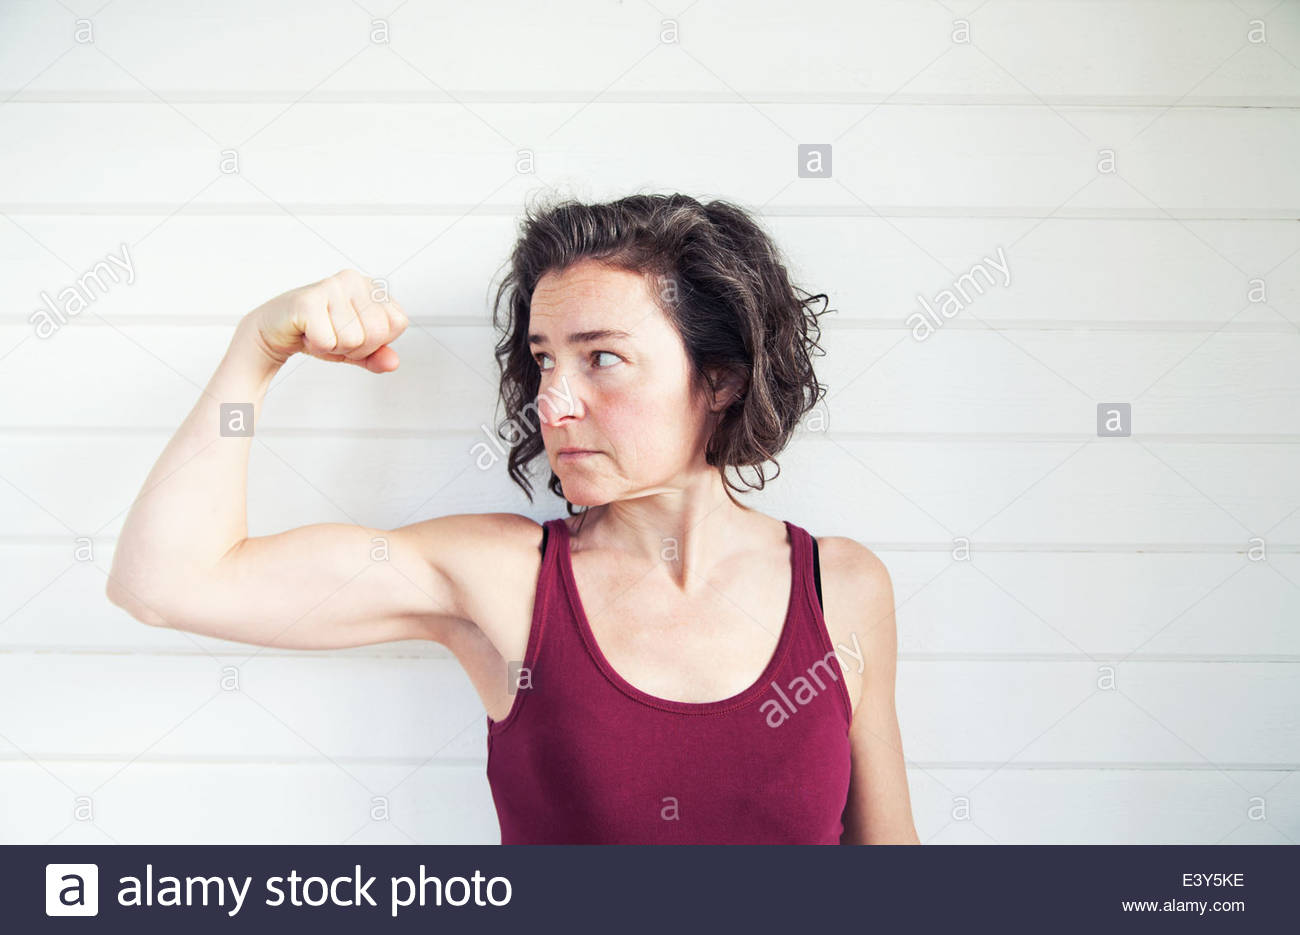 Portrait of determined mature woman flexing arm muscles - Stock Image